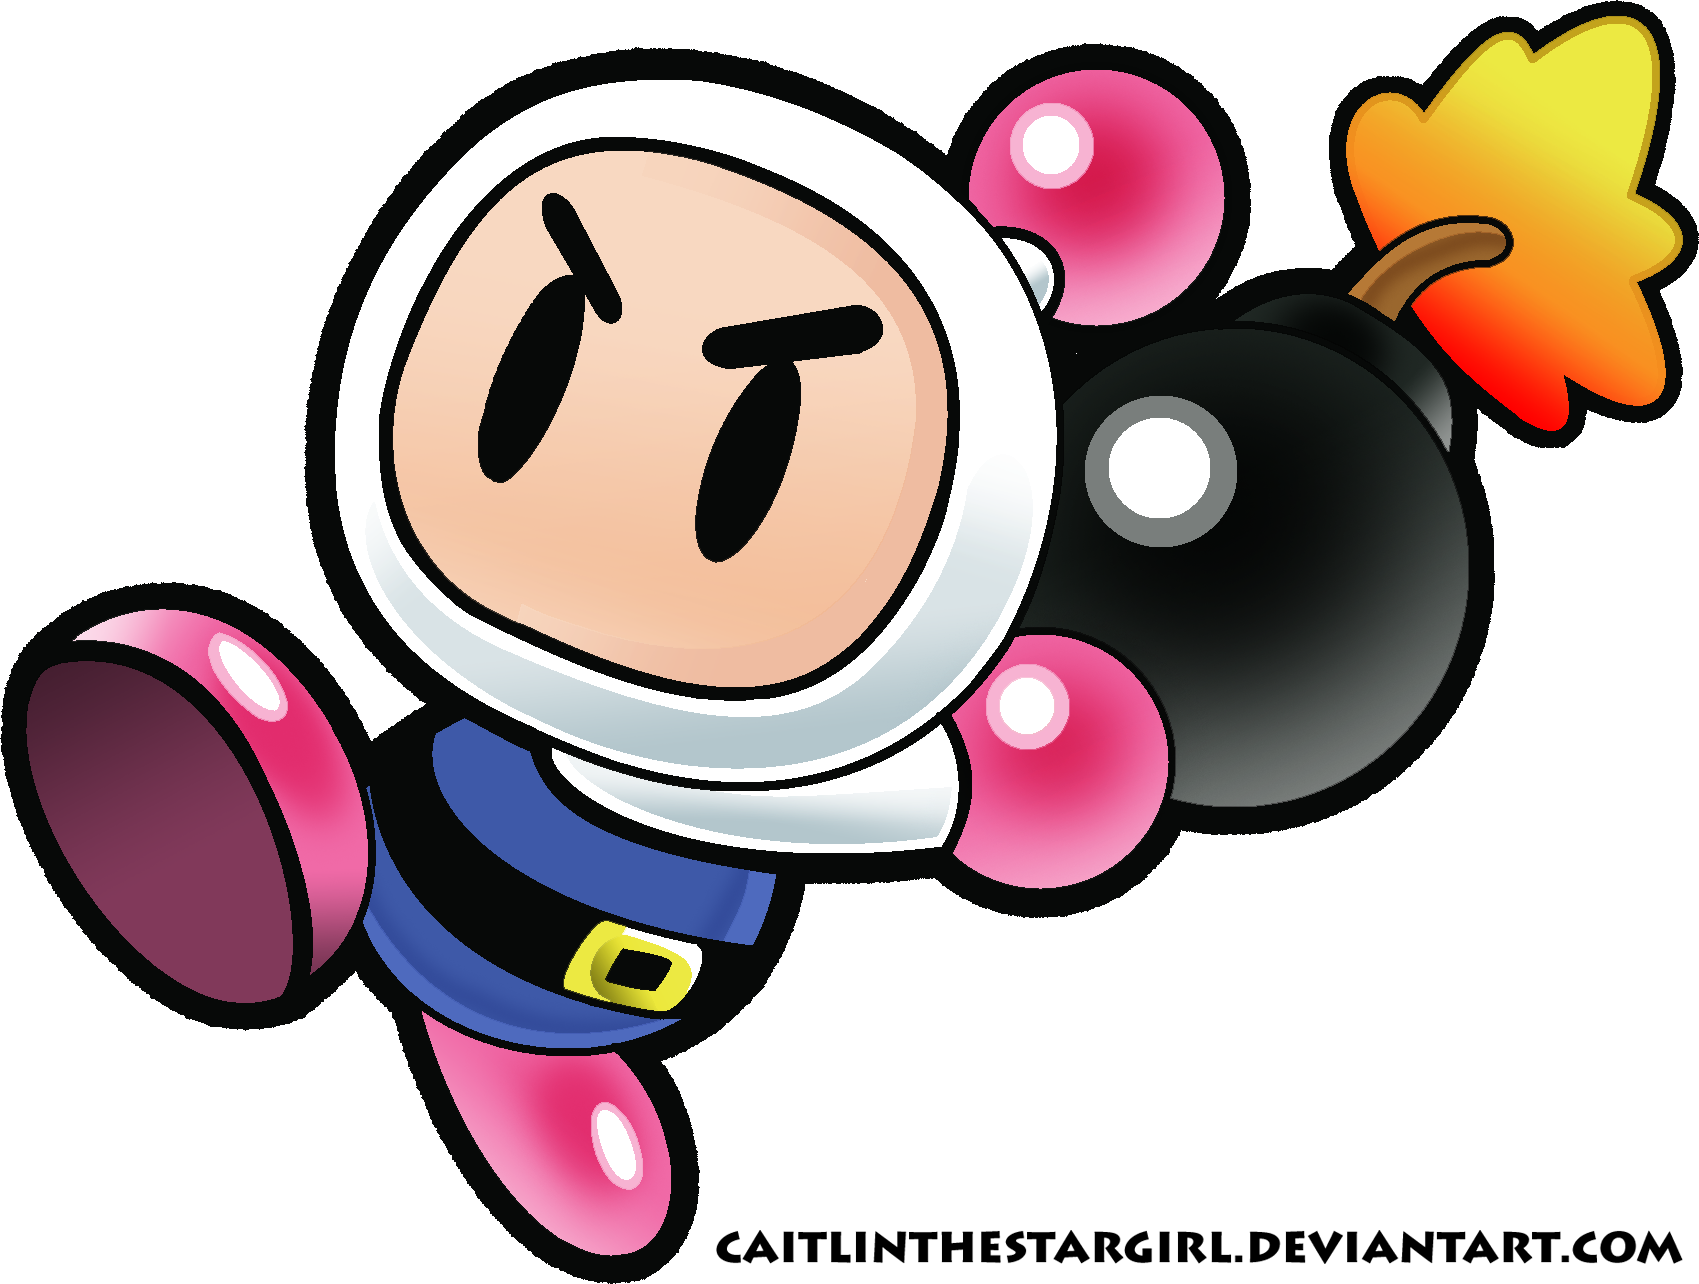 super paper bomberman by caitlinthestargirl on deviantart